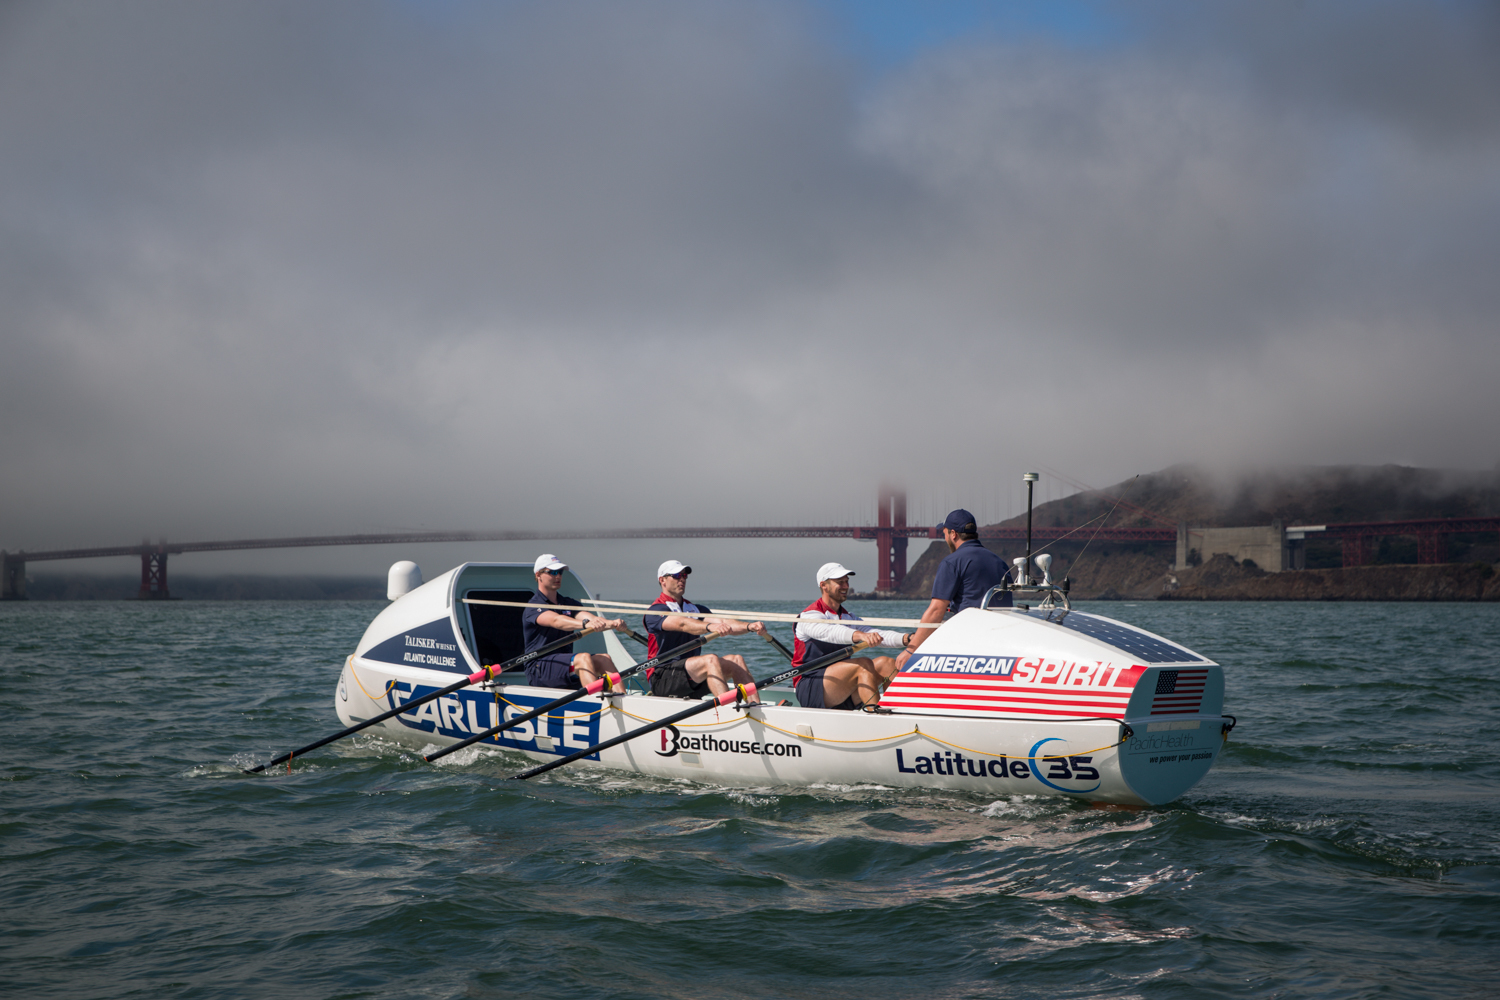 Carlisle Companies\' American Spirit to Compete in the Atlantic ...